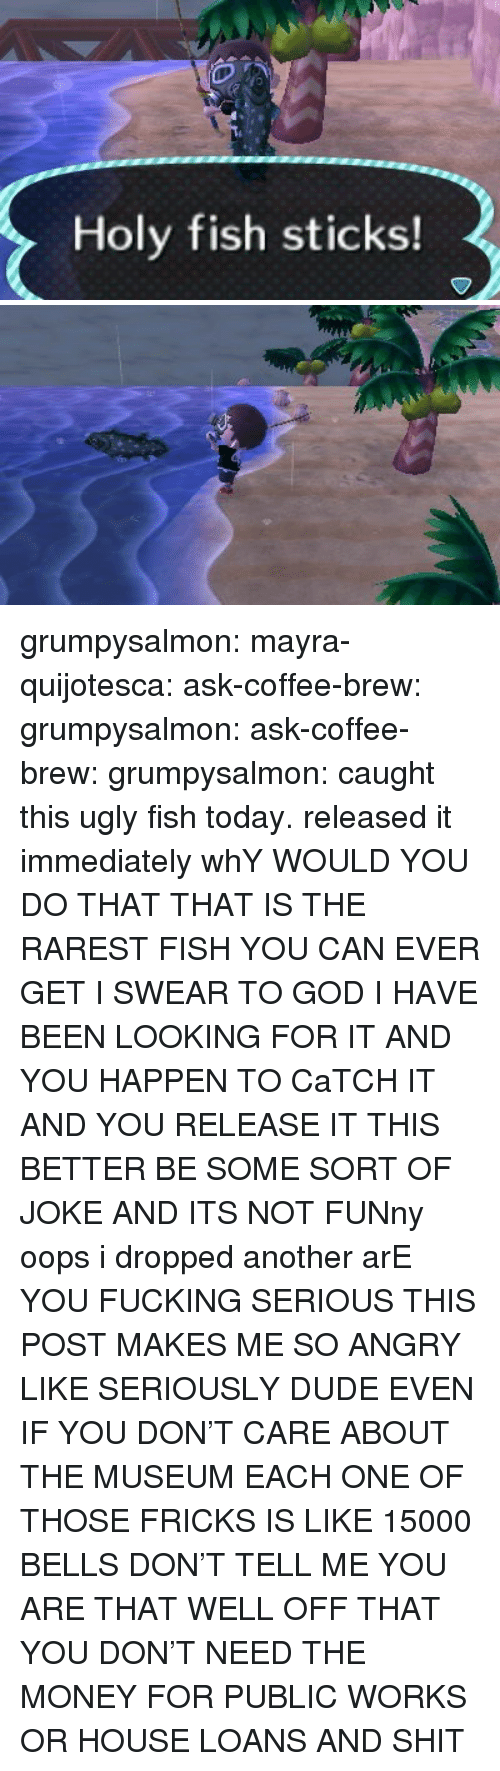 Its Not Funny: Holy fish sticks! grumpysalmon:  mayra-quijotesca:  ask-coffee-brew:  grumpysalmon:  ask-coffee-brew:  grumpysalmon:  caught this ugly fish today. released it immediately  whY WOULD YOU DO THAT THAT IS THE RAREST FISH YOU CAN EVER GET I SWEAR TO GOD I HAVE BEEN LOOKING FOR IT AND YOU HAPPEN TO CaTCH IT AND YOU RELEASE IT THIS BETTER BE SOME SORT OF JOKE AND ITS NOT FUNny   oops i dropped another  arE YOU FUCKING SERIOUS  THIS POST MAKES ME SO ANGRY LIKE SERIOUSLY DUDE EVEN IF YOU DON'T CARE ABOUT THE MUSEUM EACH ONE OF THOSE FRICKS IS LIKE 15000 BELLS DON'T TELL ME YOU ARE THAT WELL OFF THAT YOU DON'T NEED THE MONEY FOR PUBLIC WORKS OR HOUSE LOANS AND SHIT